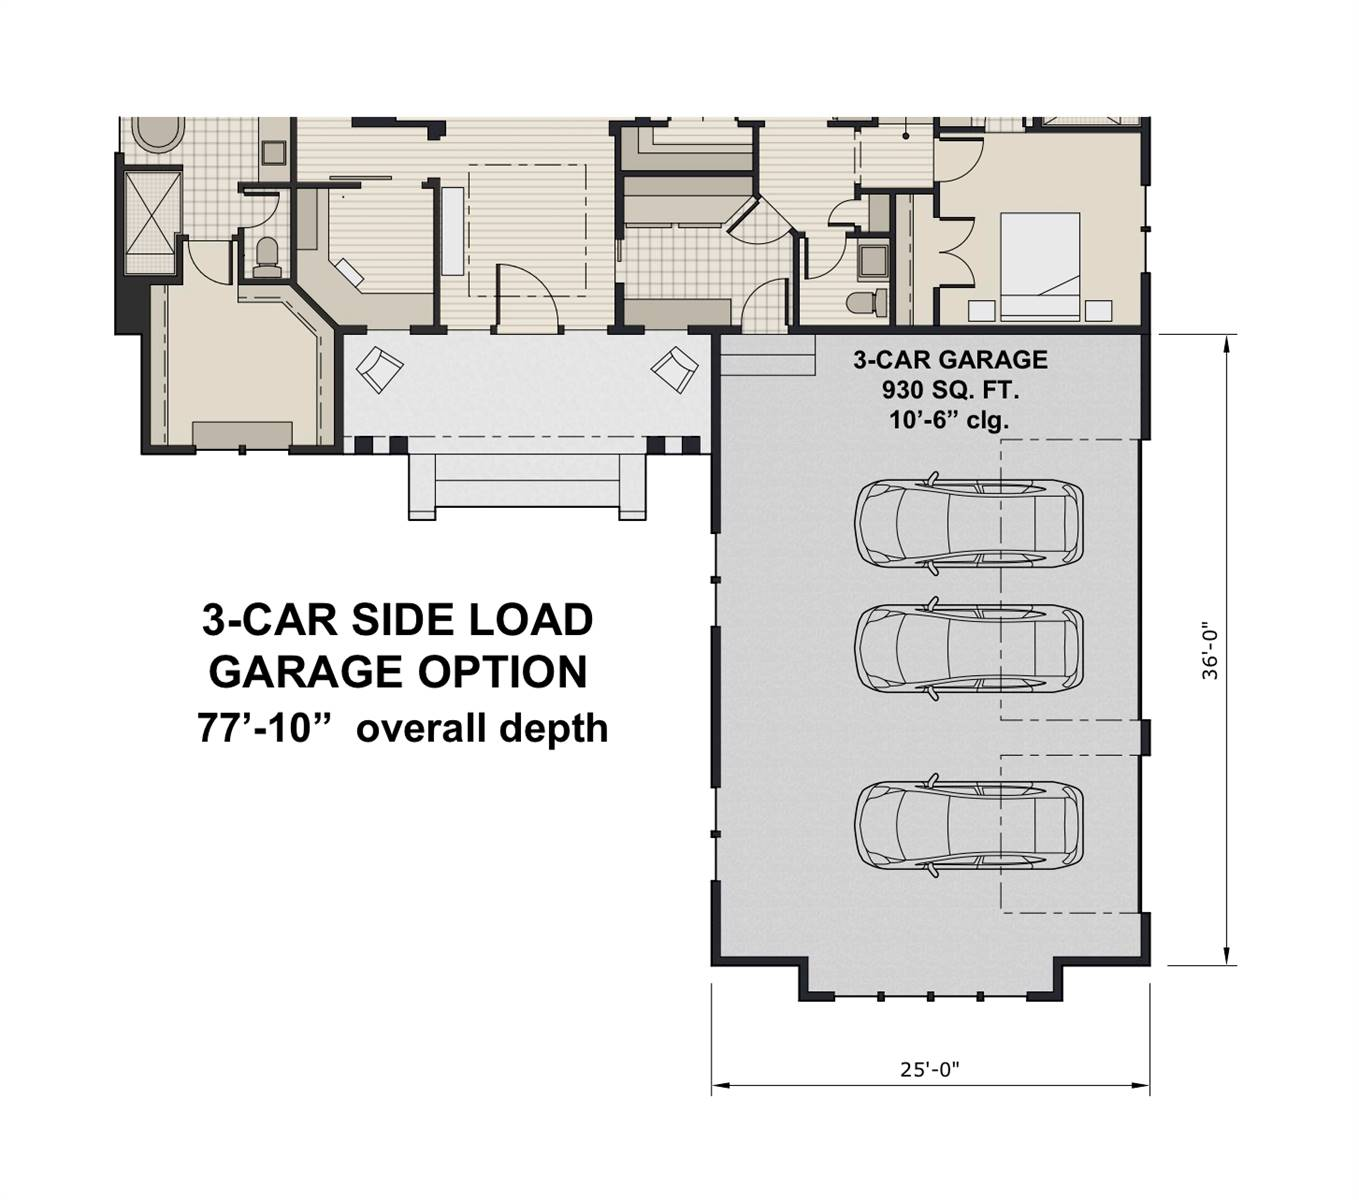 Side Load Garage Option